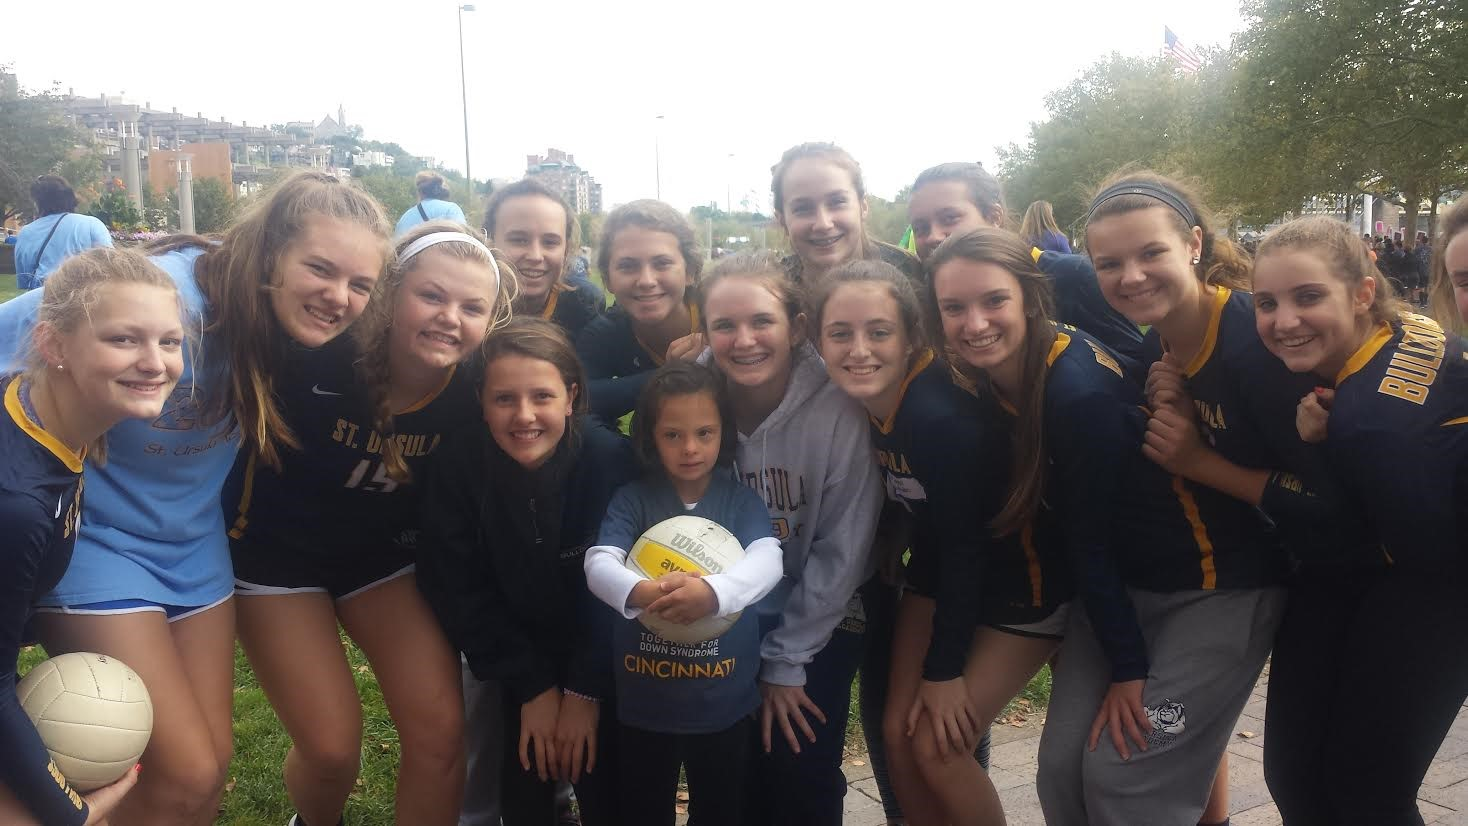 The Saint Ursula Volleyball Team volunteered at the Buddy Walk at Sawyer Point